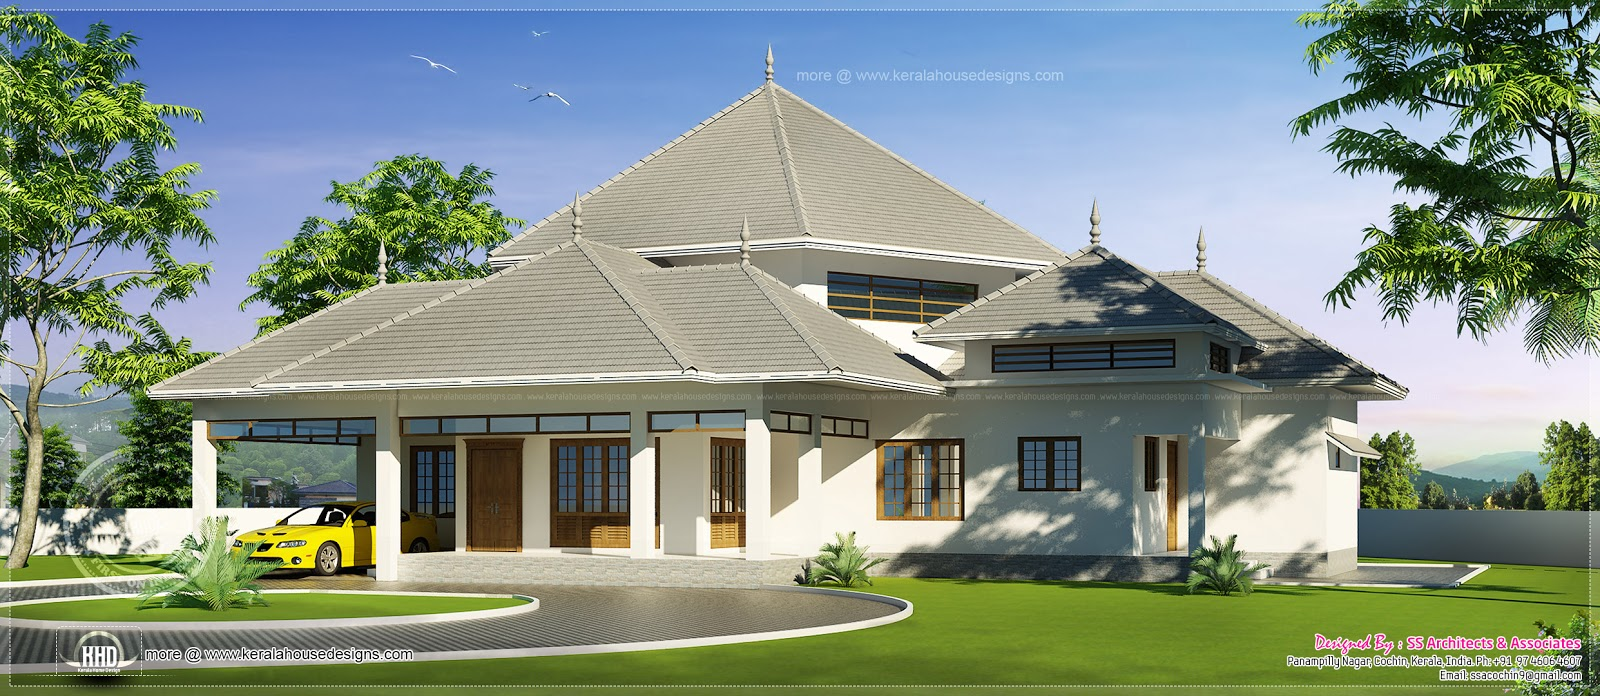 Modern house pictures in kerala